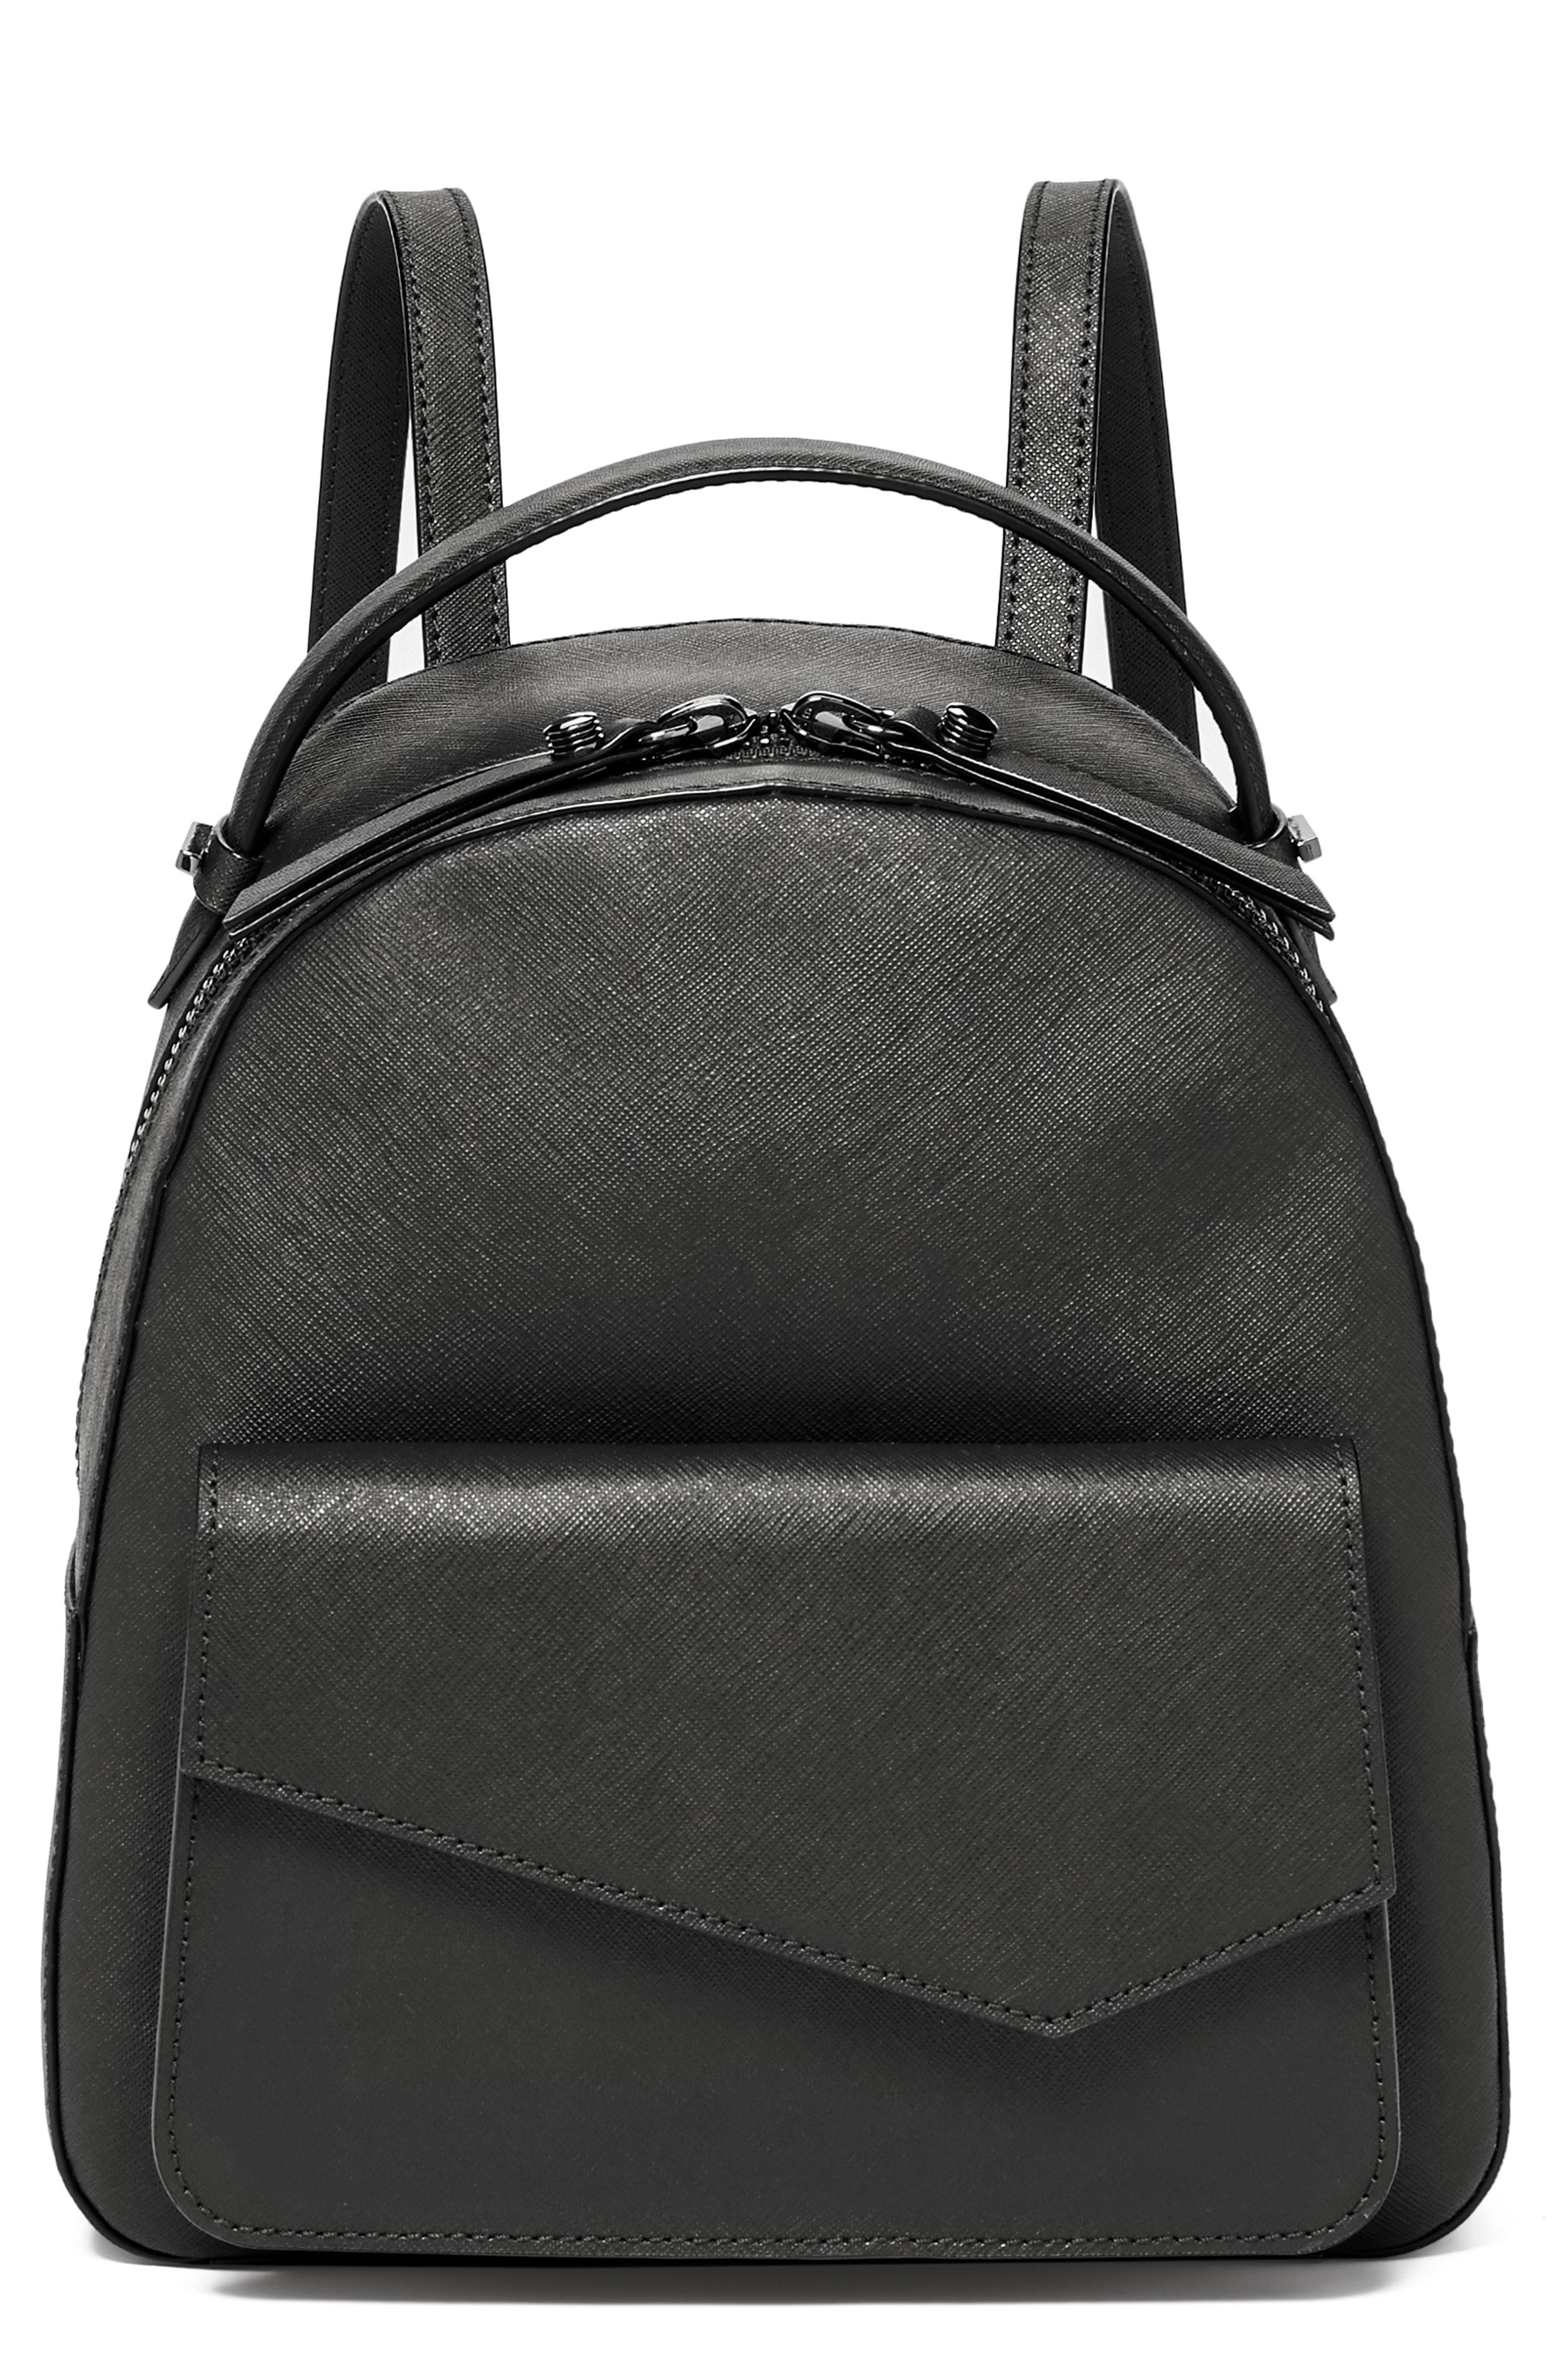 10d17f7b2da4 Lyst - Botkier Cobble Hill Calfskin Leather Backpack in Black - Save 30%